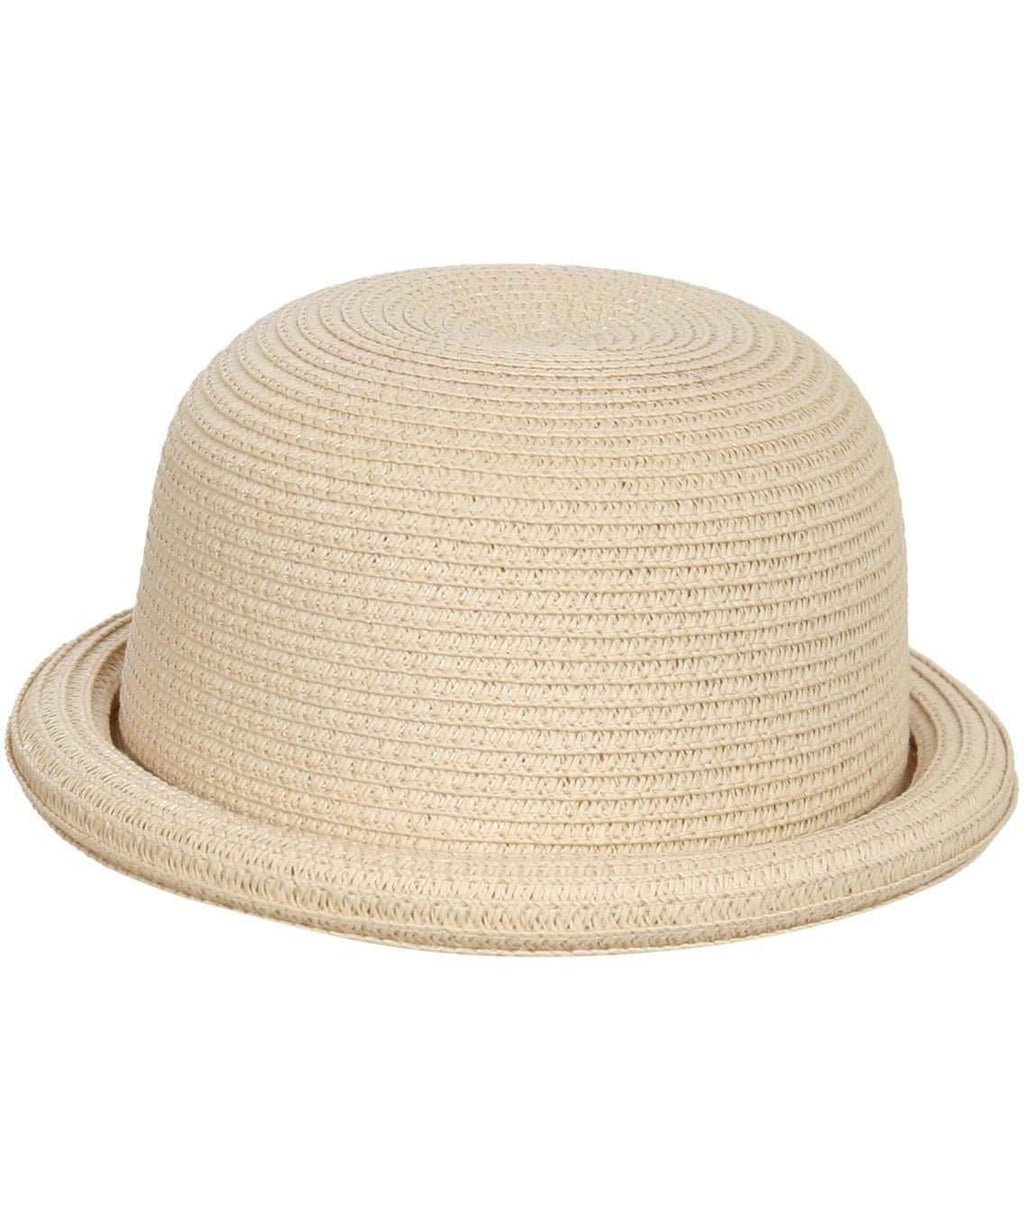 Roll Up Straw Bowler Hat in Wheat FRONT